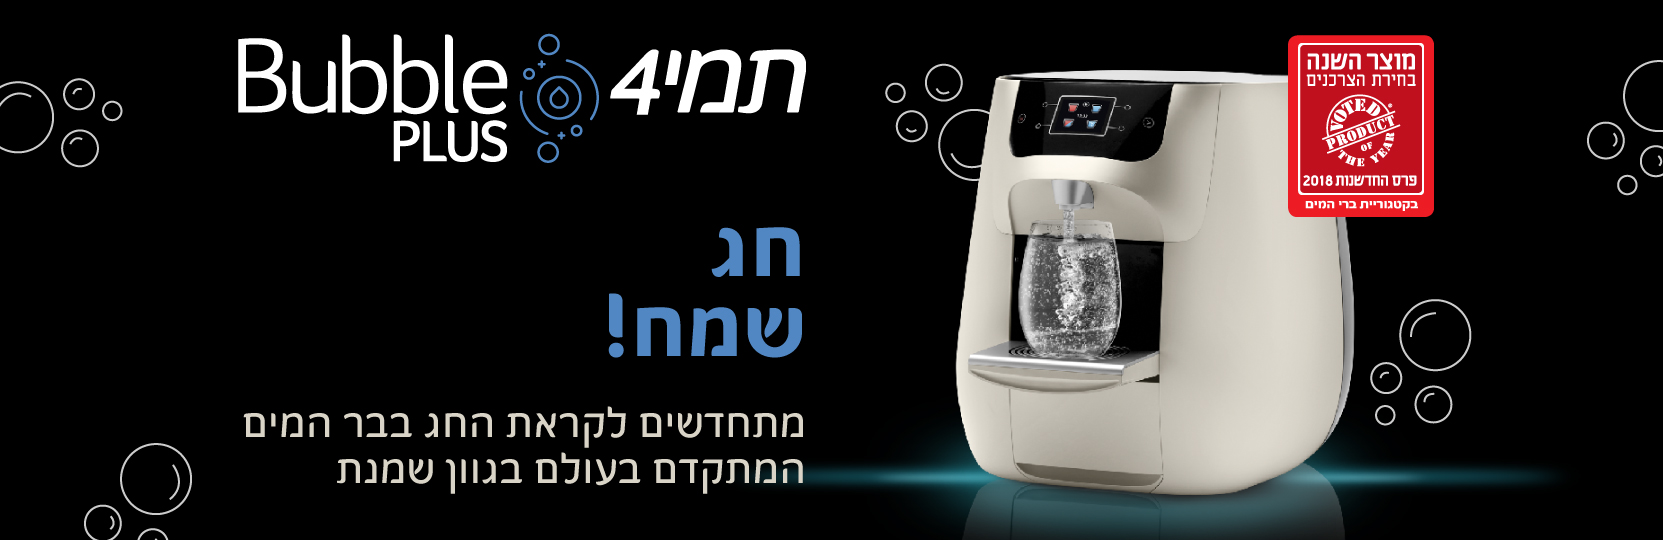 מיני בר תמי4 bubble plus